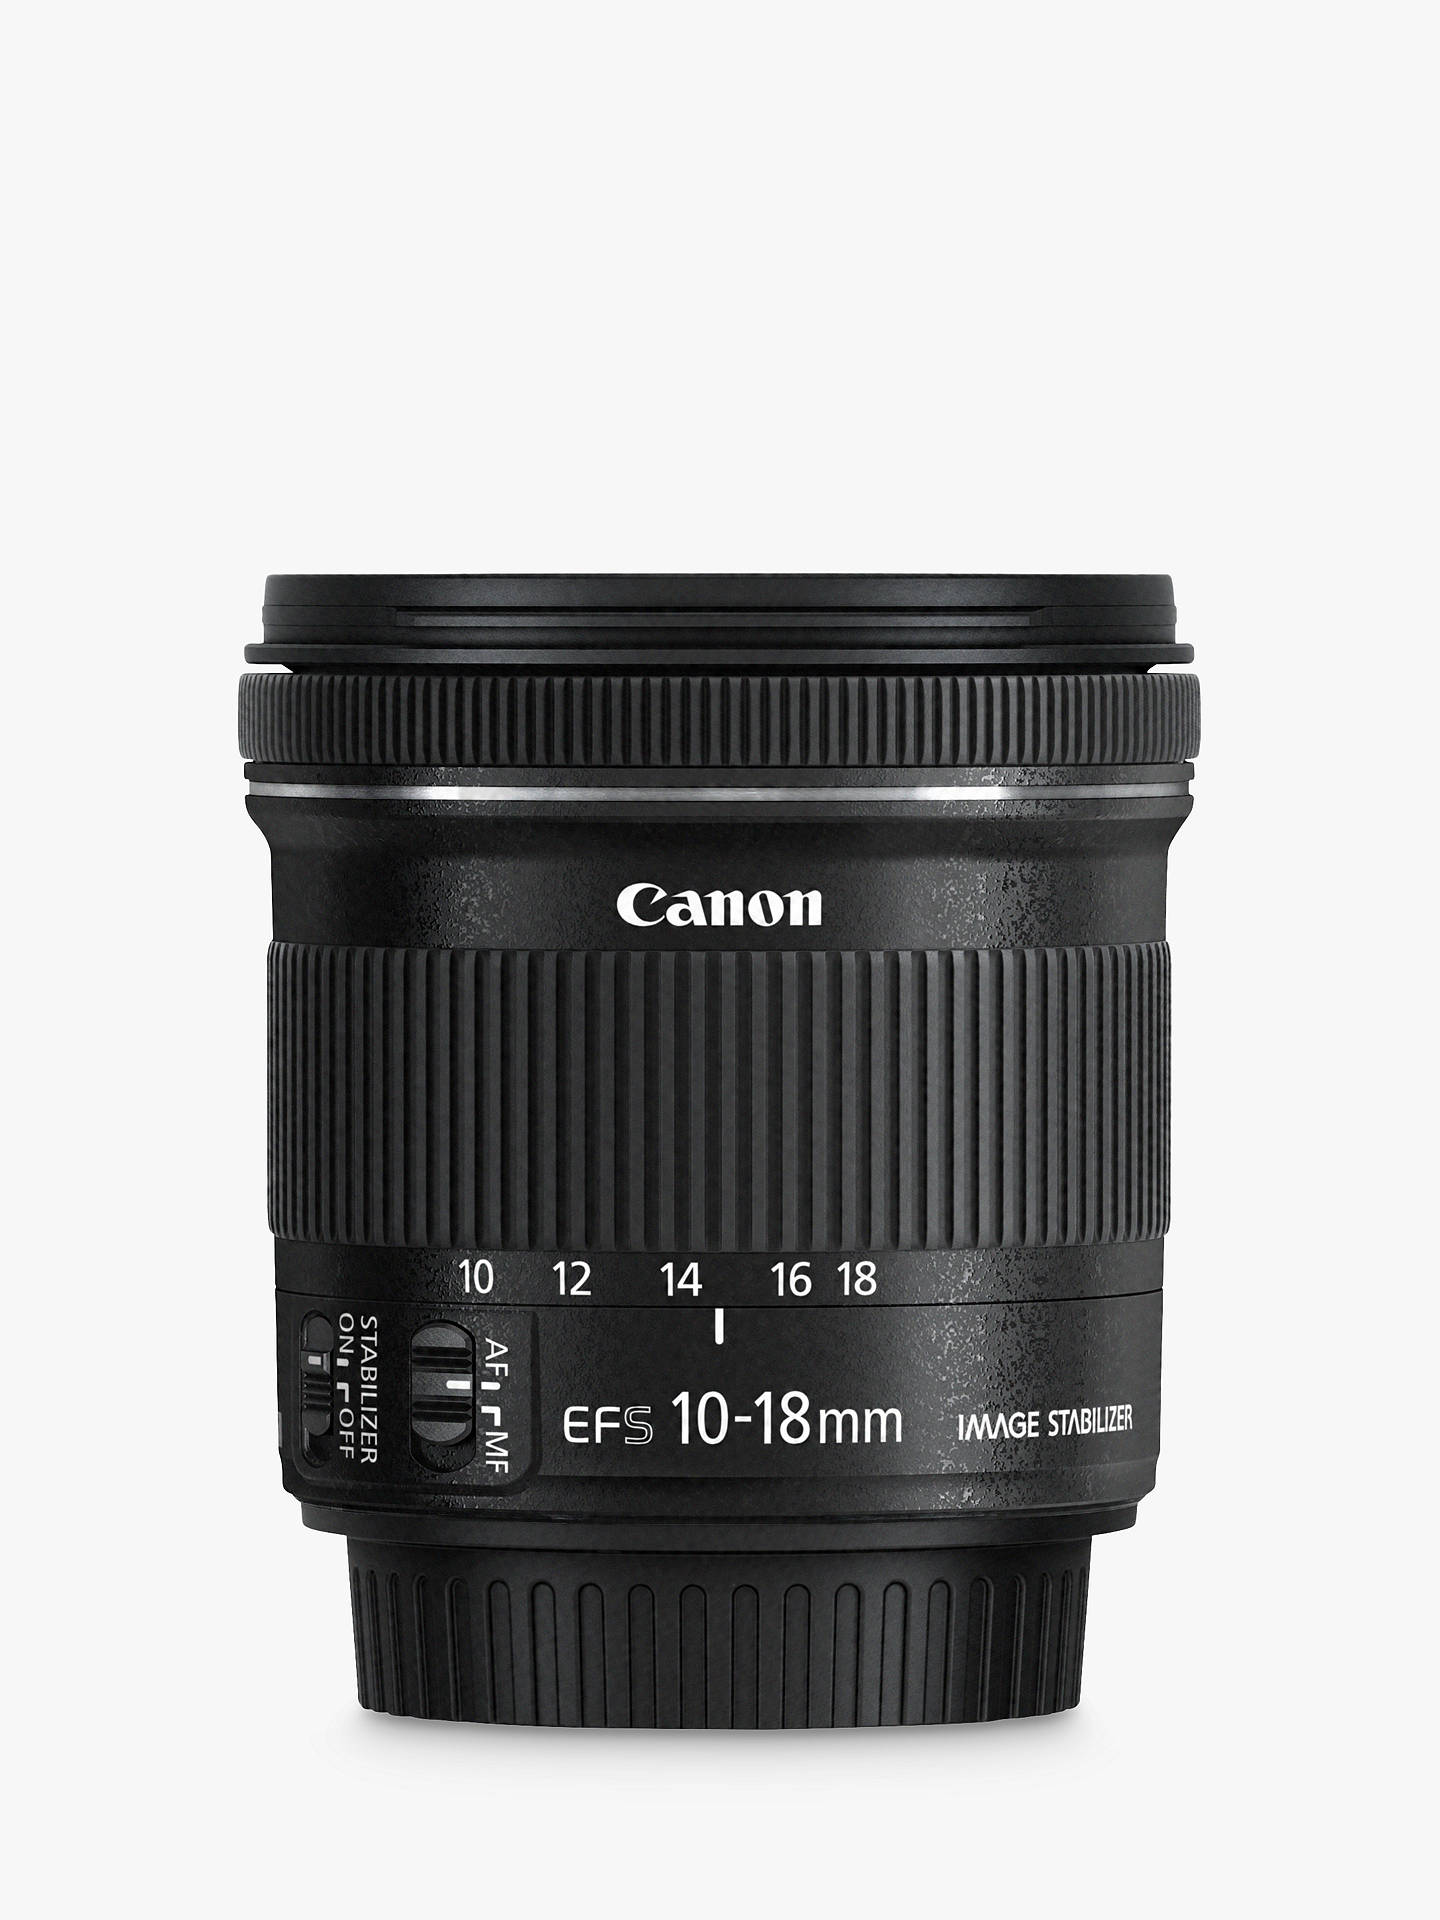 BuyCanon EF-S 10-18mm f/4.5-5.6 IS STM Wide Angle Lens Online at johnlewis.com